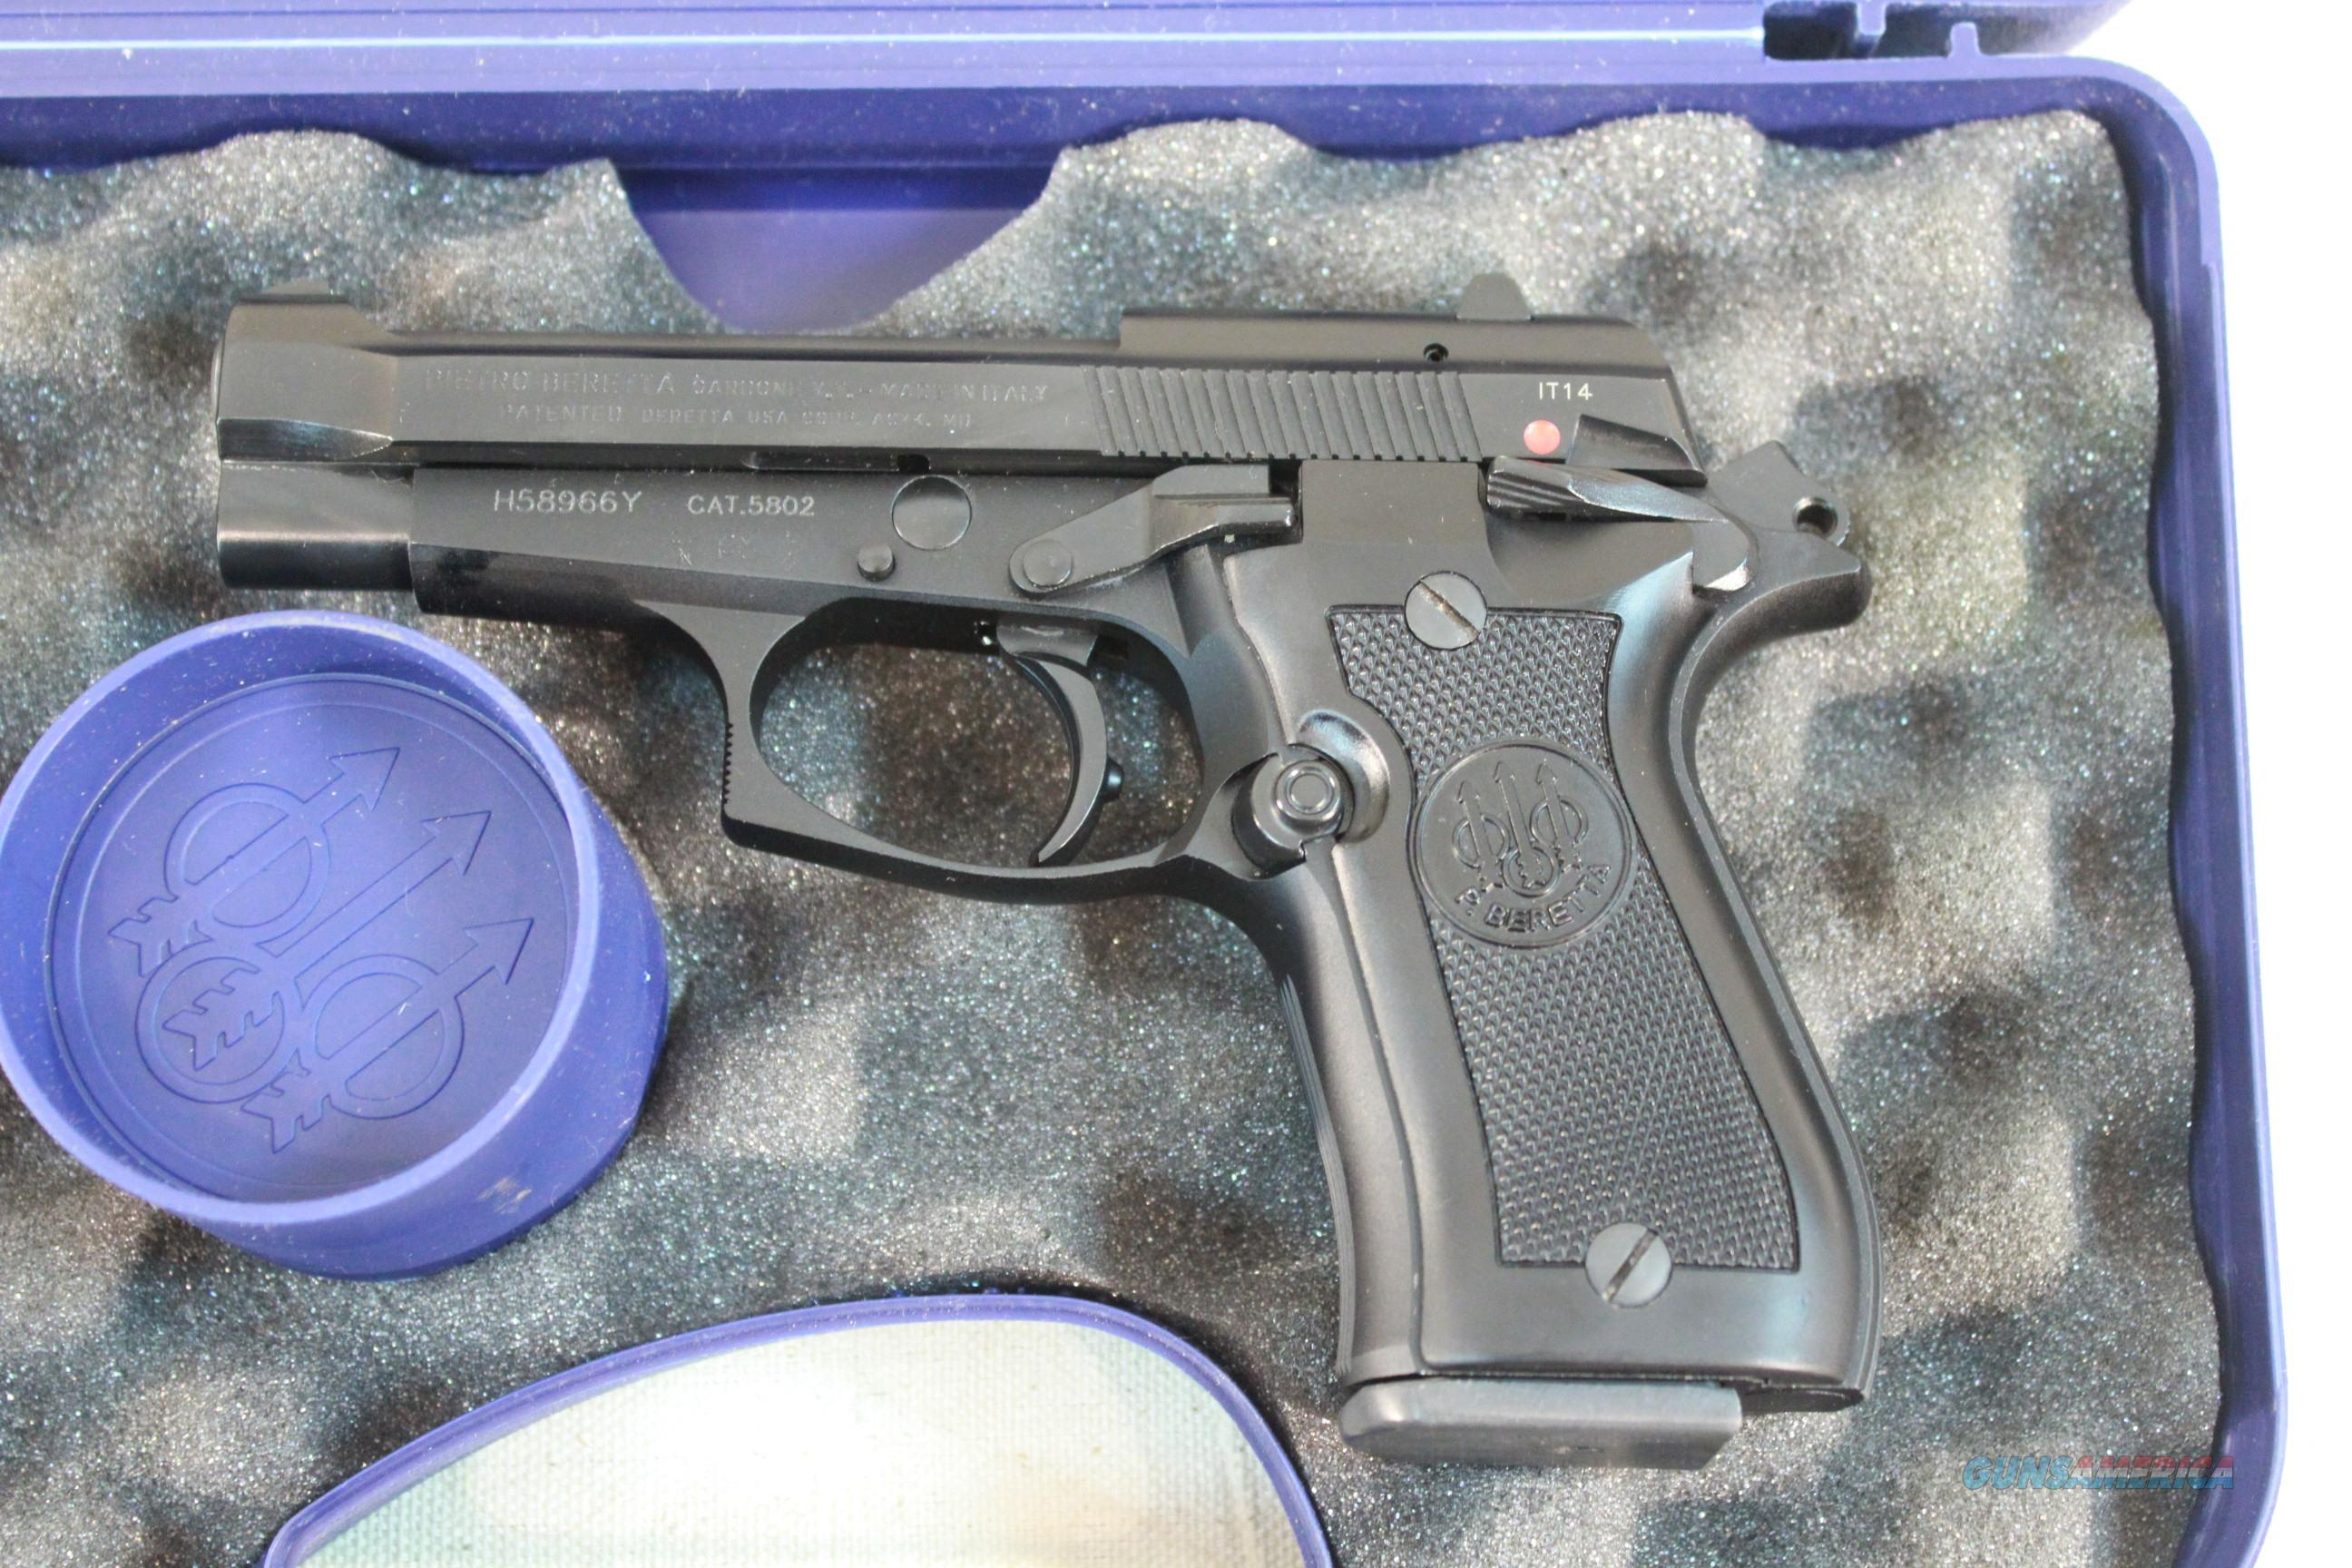 Beretta Model 84FS Cheetah, .380acp Like New in the box w/2 13-round magazines  Guns > Pistols > Beretta Pistols > Cheetah Series > Model 84